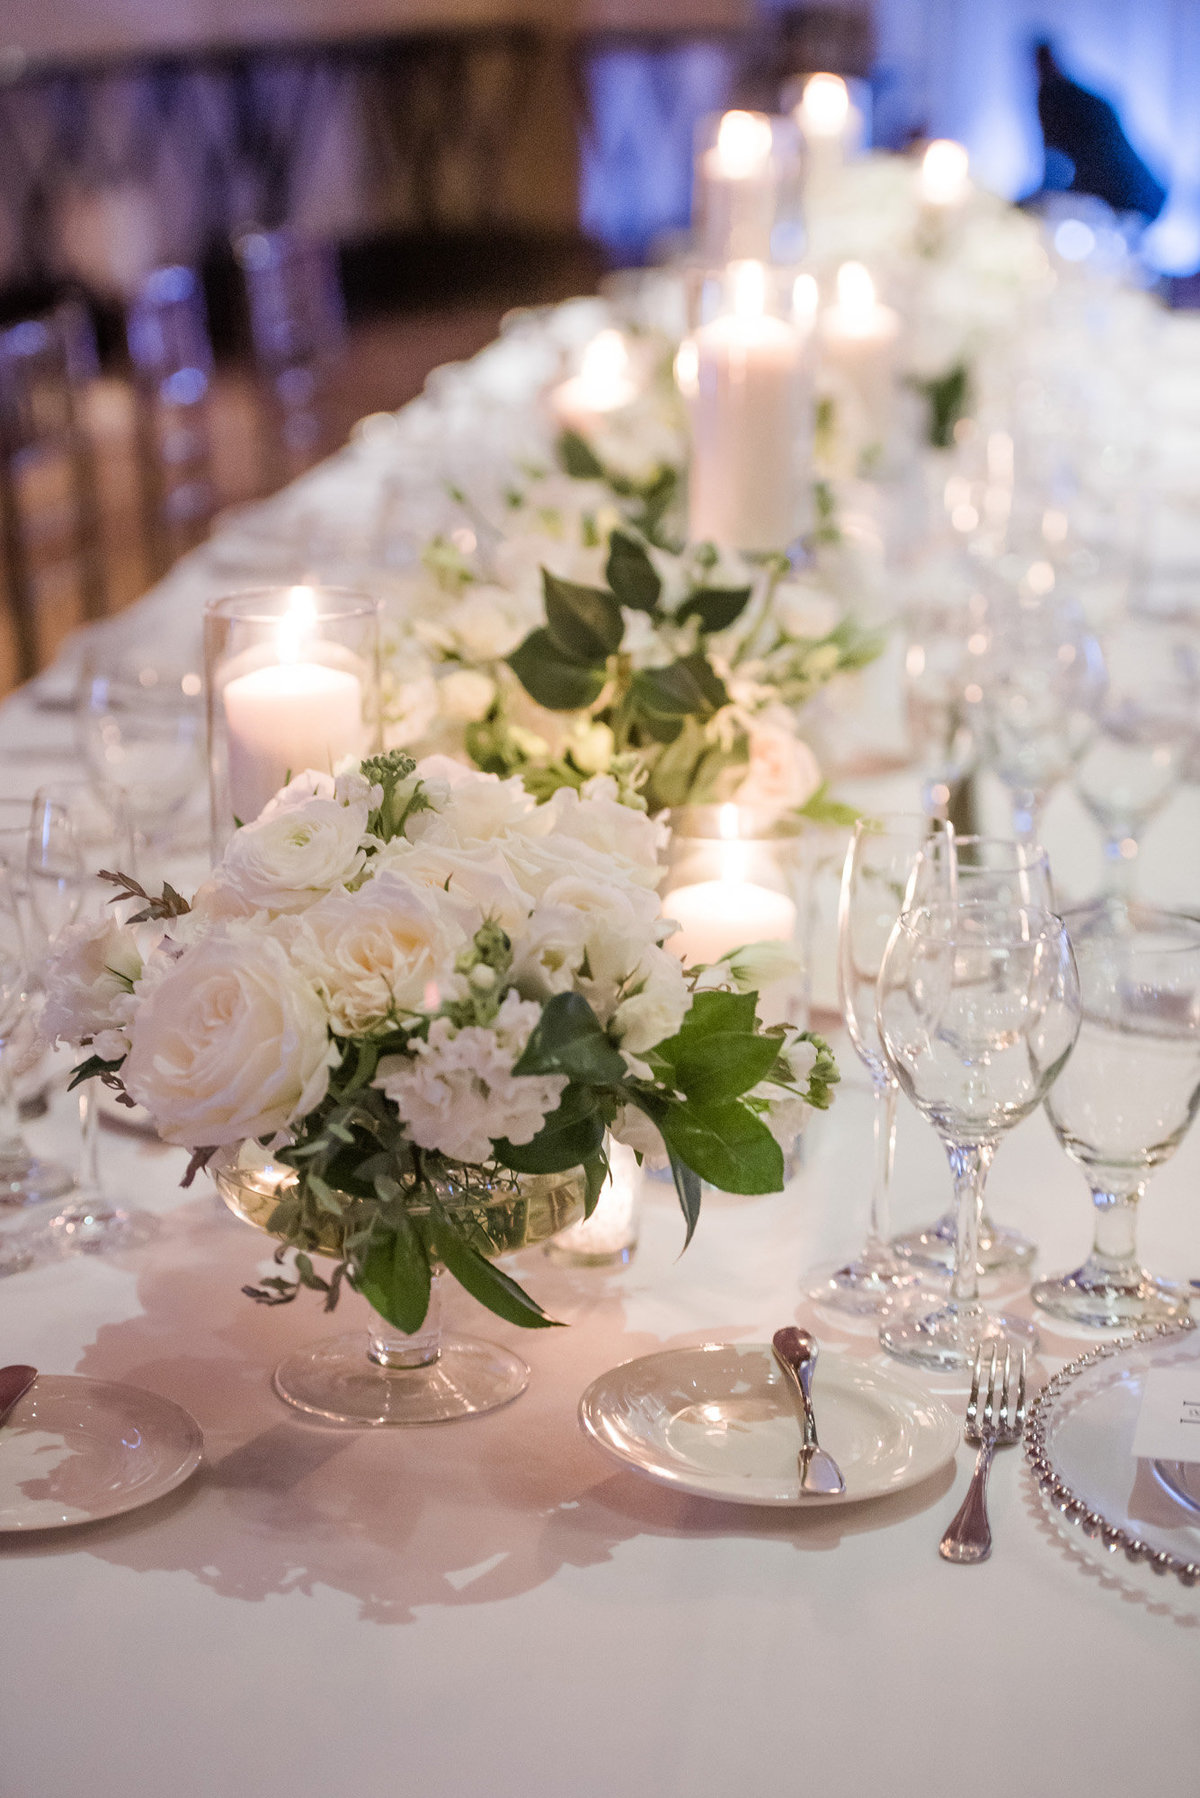 a wedding tablescape photo with white florals and greenery and white candles in JW Marriott Resort and Spa Las Vegas